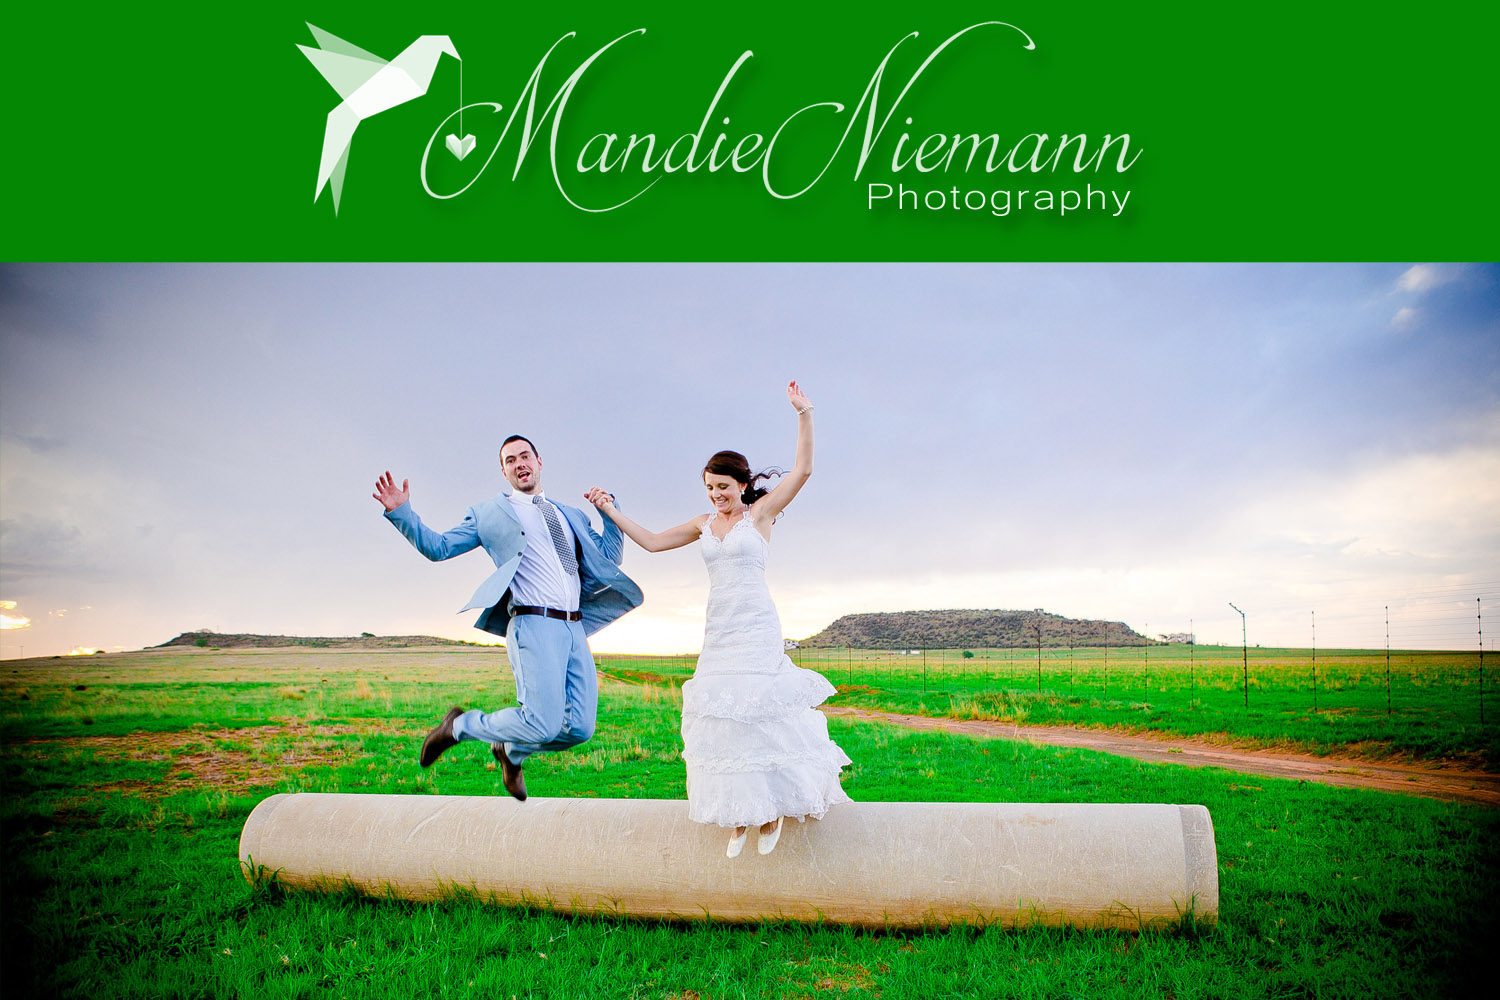 Mandie Niemann is a Bloemfontein based wedding photographer and would love to capture your story!